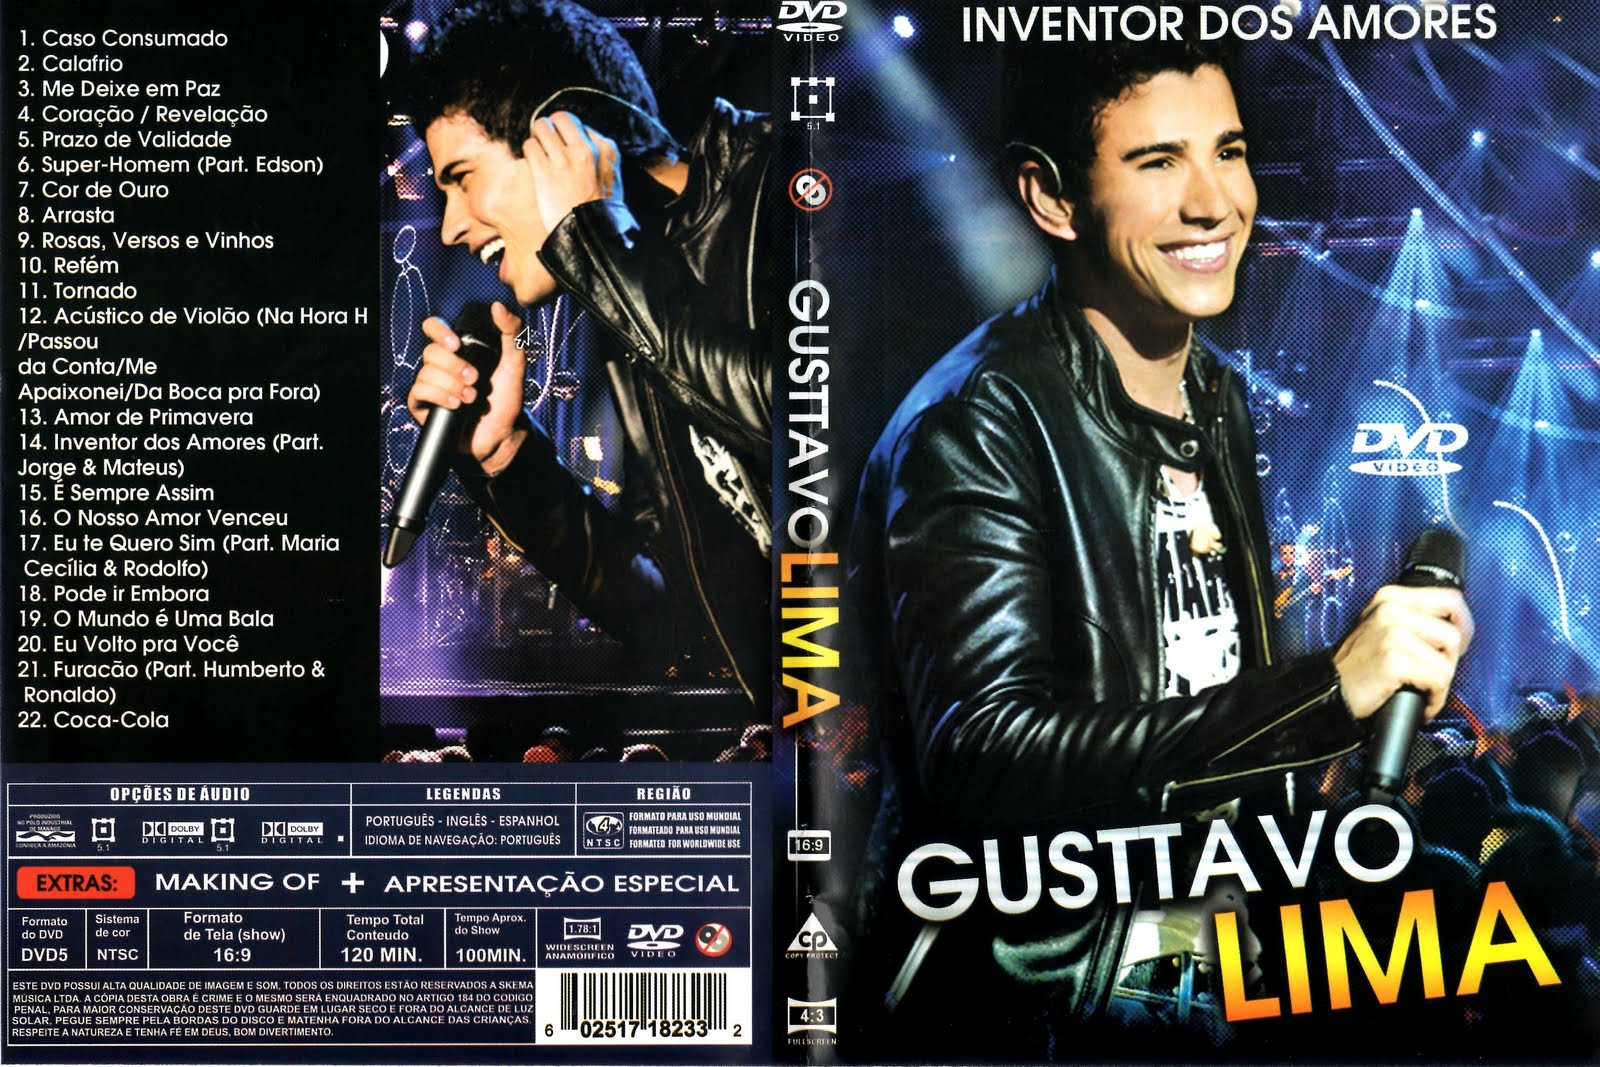 musica gustavo lima inventor dos amores mp3